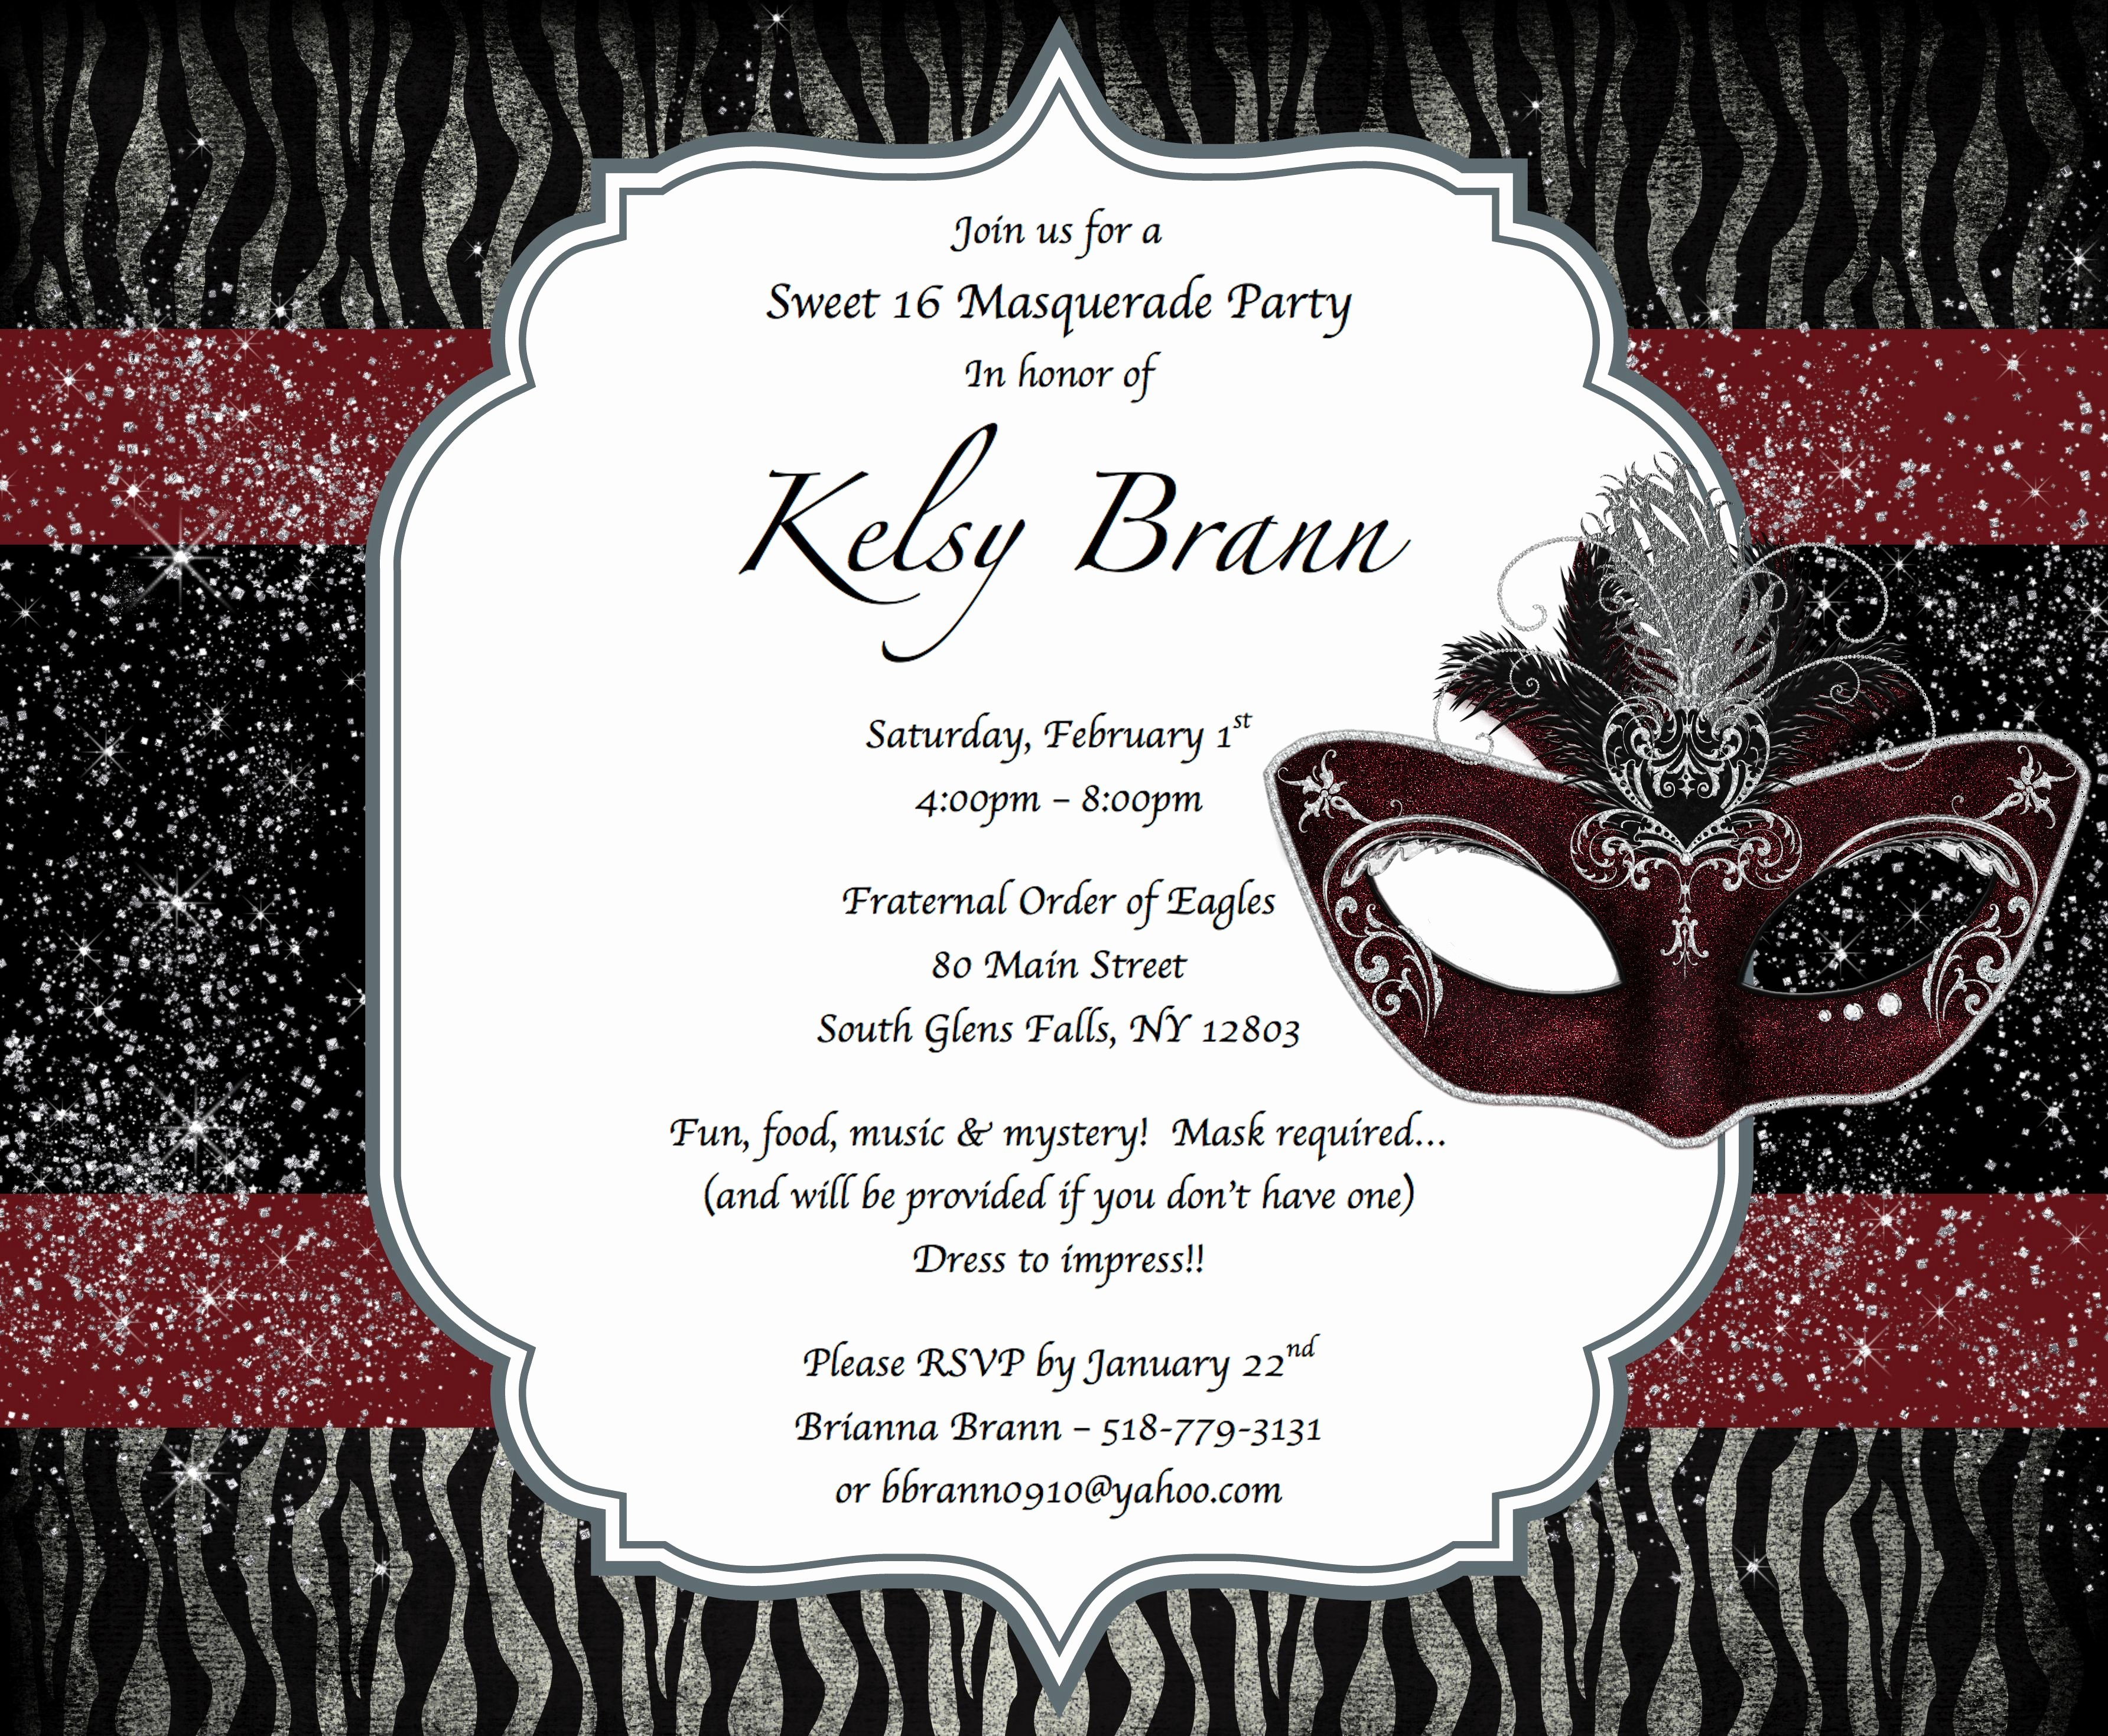 Masquerade Invitations for Sweet 16 Best Of Sweet 16 Masquerade Party Invitations